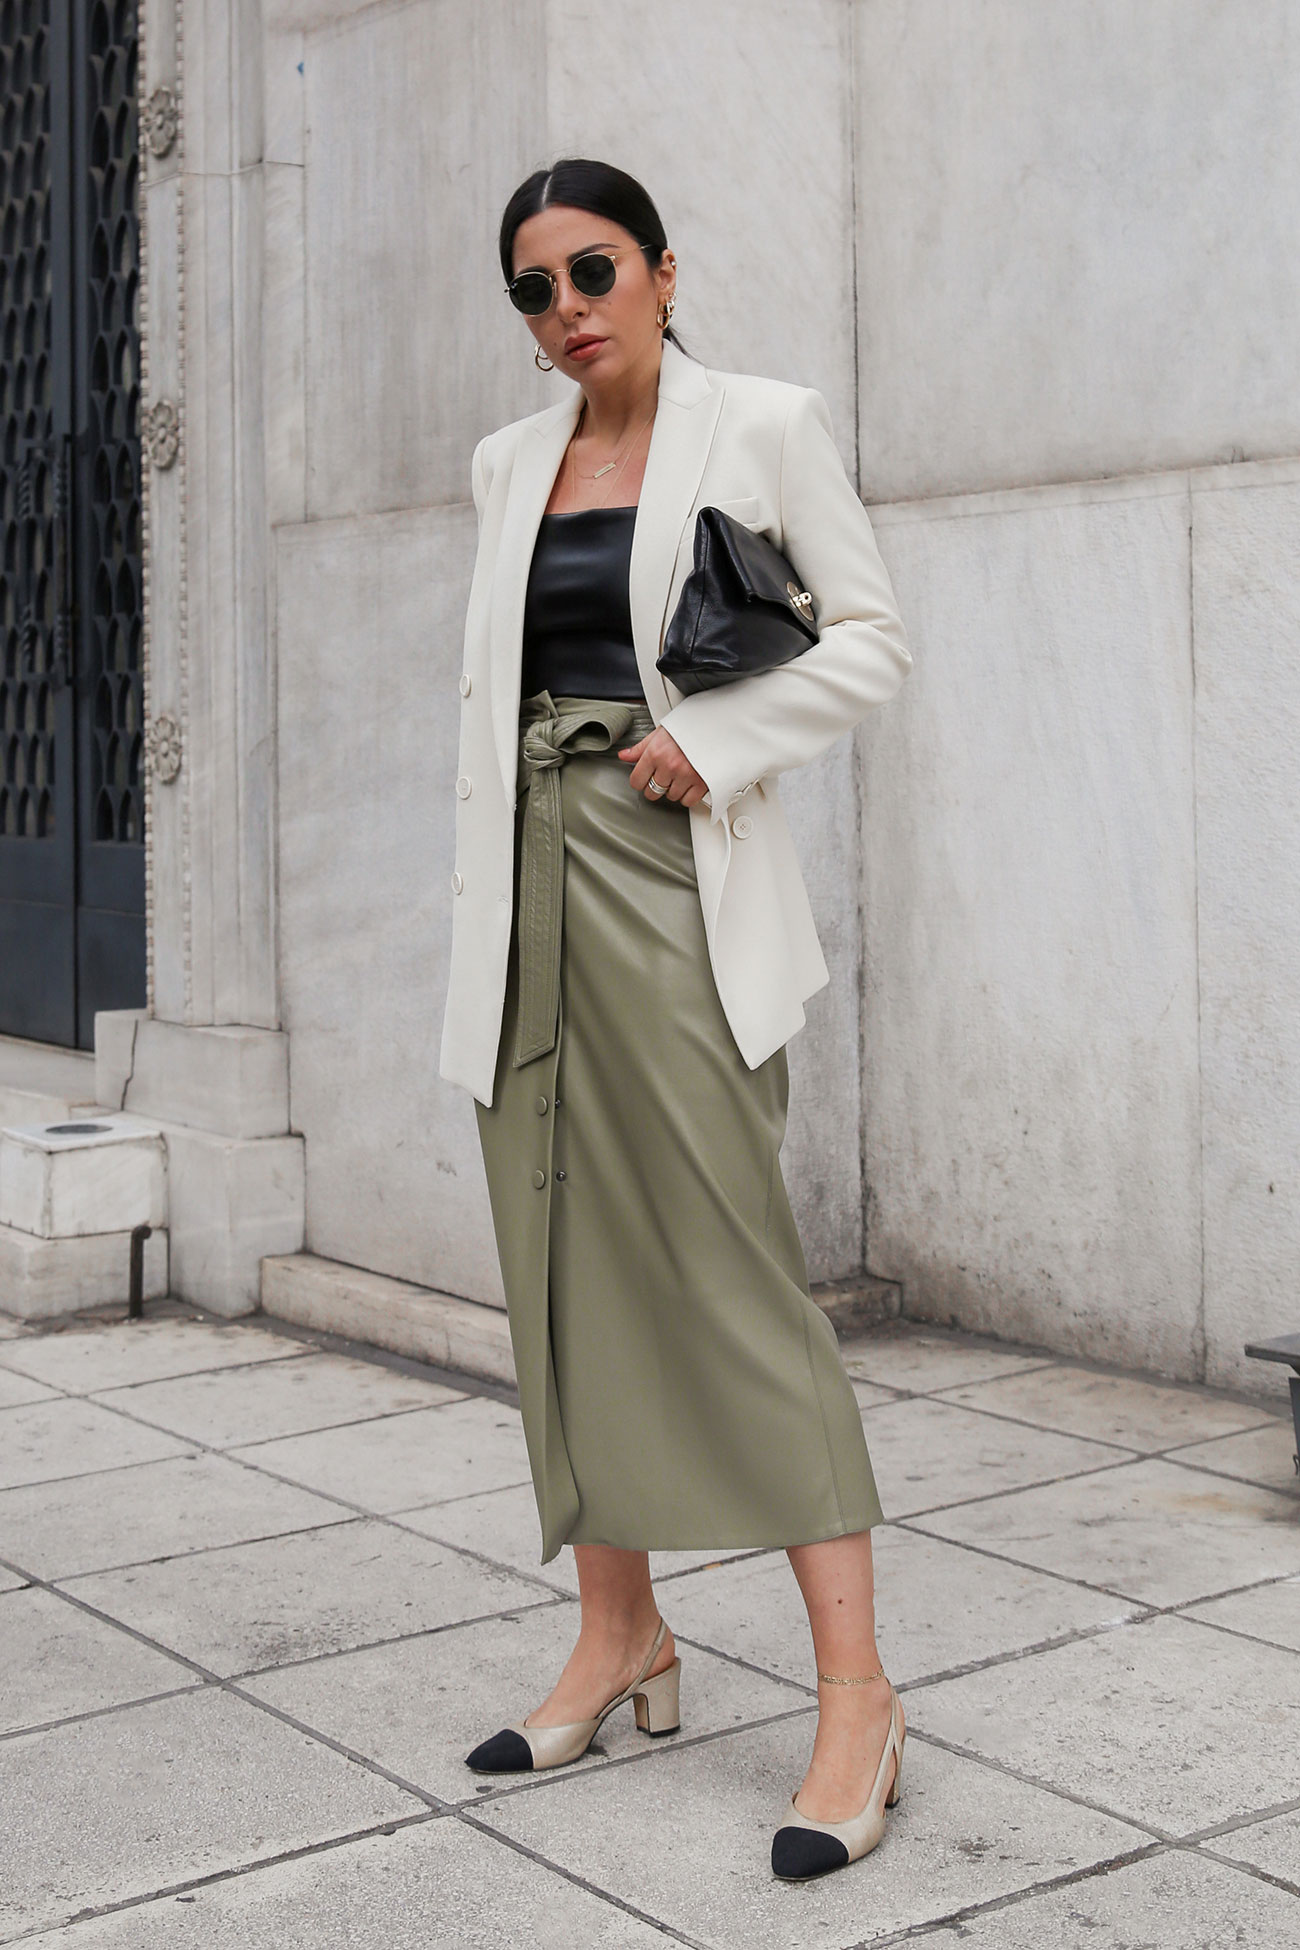 How to style a faux leather skirt - Stella Asteria wearing this season's must-have skirt with black crop top, pff-white blazer, Mulberry Clemmie clutch bag and Chanel classic slingbacks